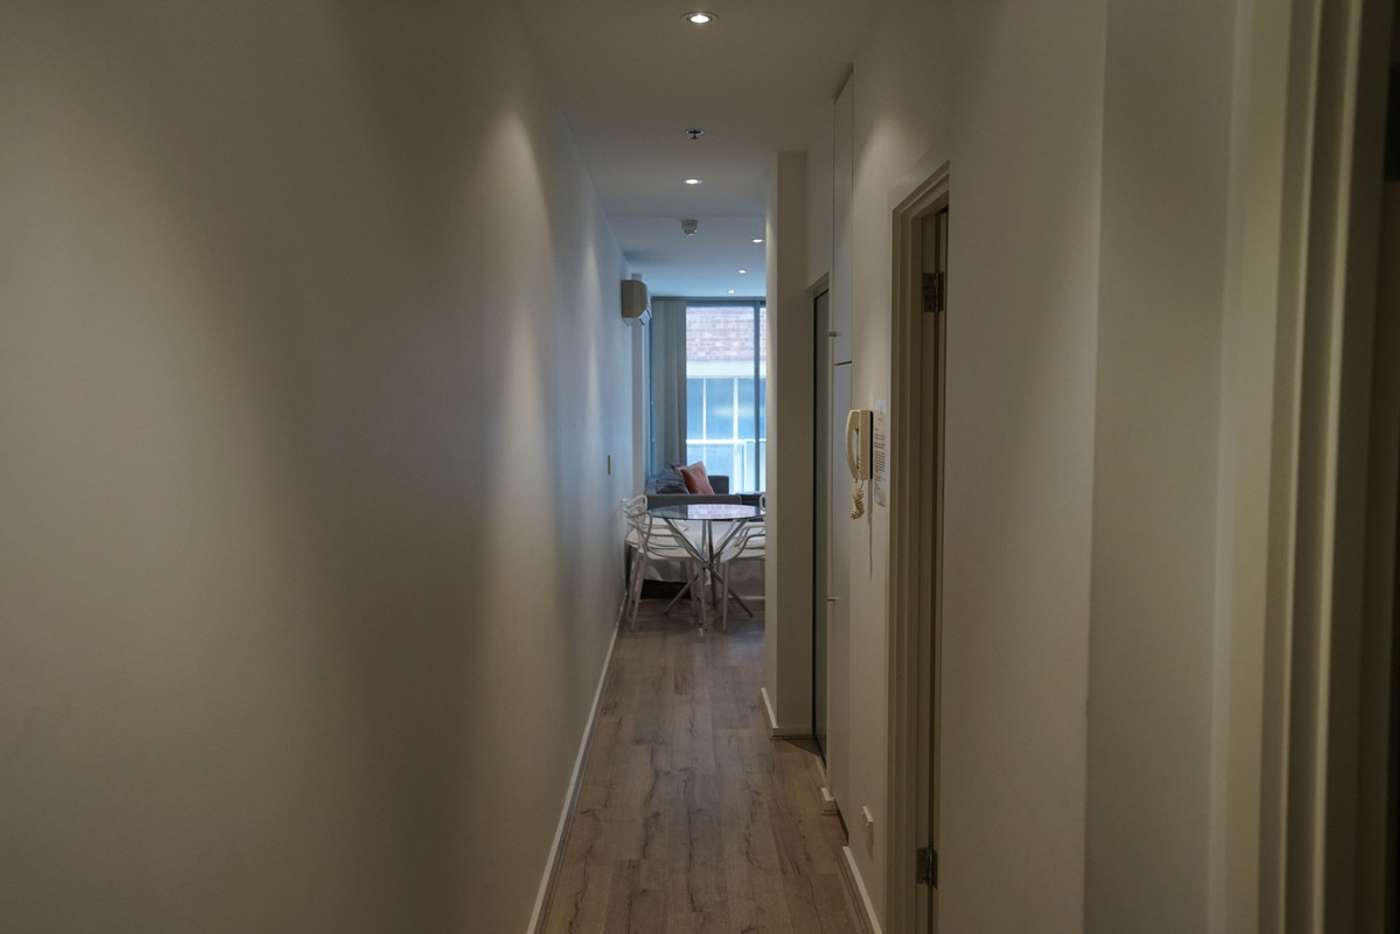 Sixth view of Homely apartment listing, 45 York Street, Adelaide SA 5000